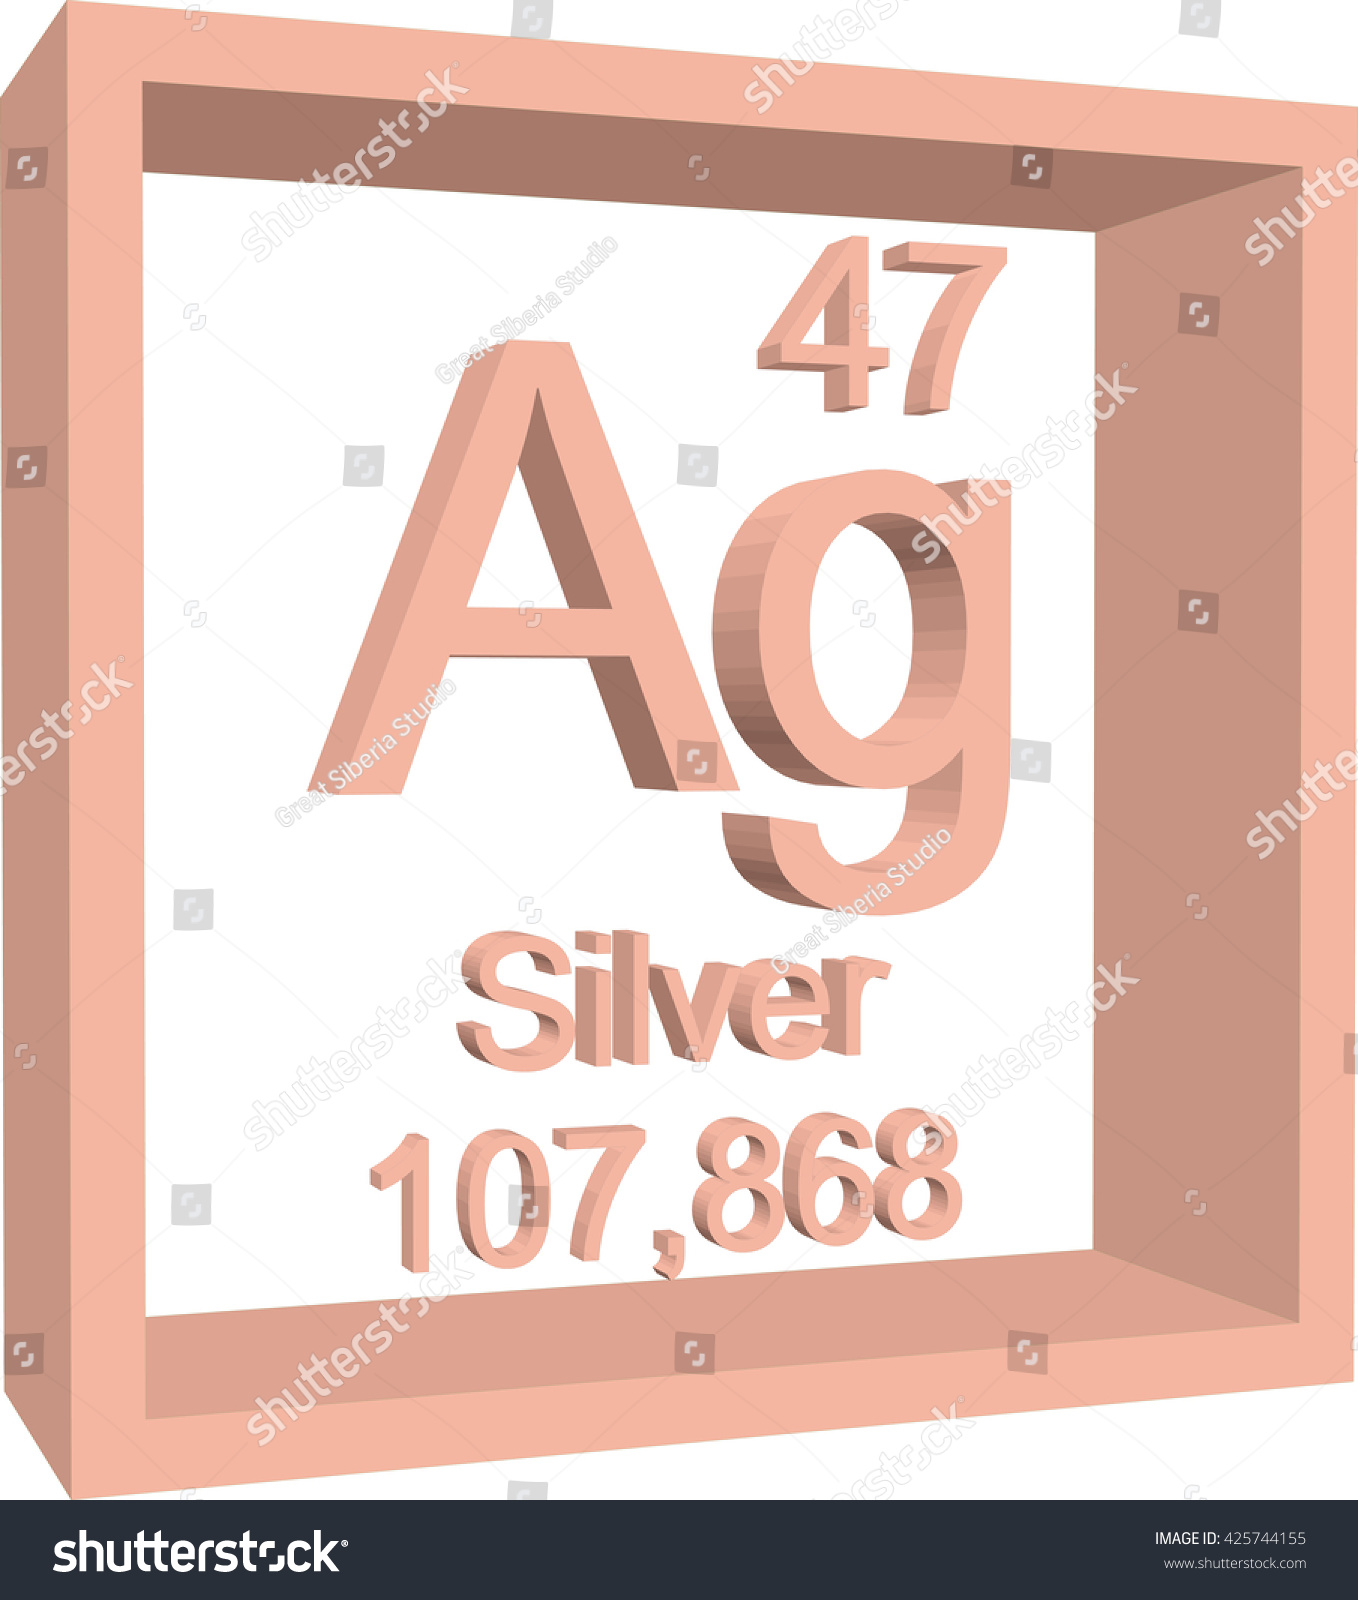 Periodic table elements silver stock vector 425744155 shutterstock periodic table of elements silver urtaz Gallery